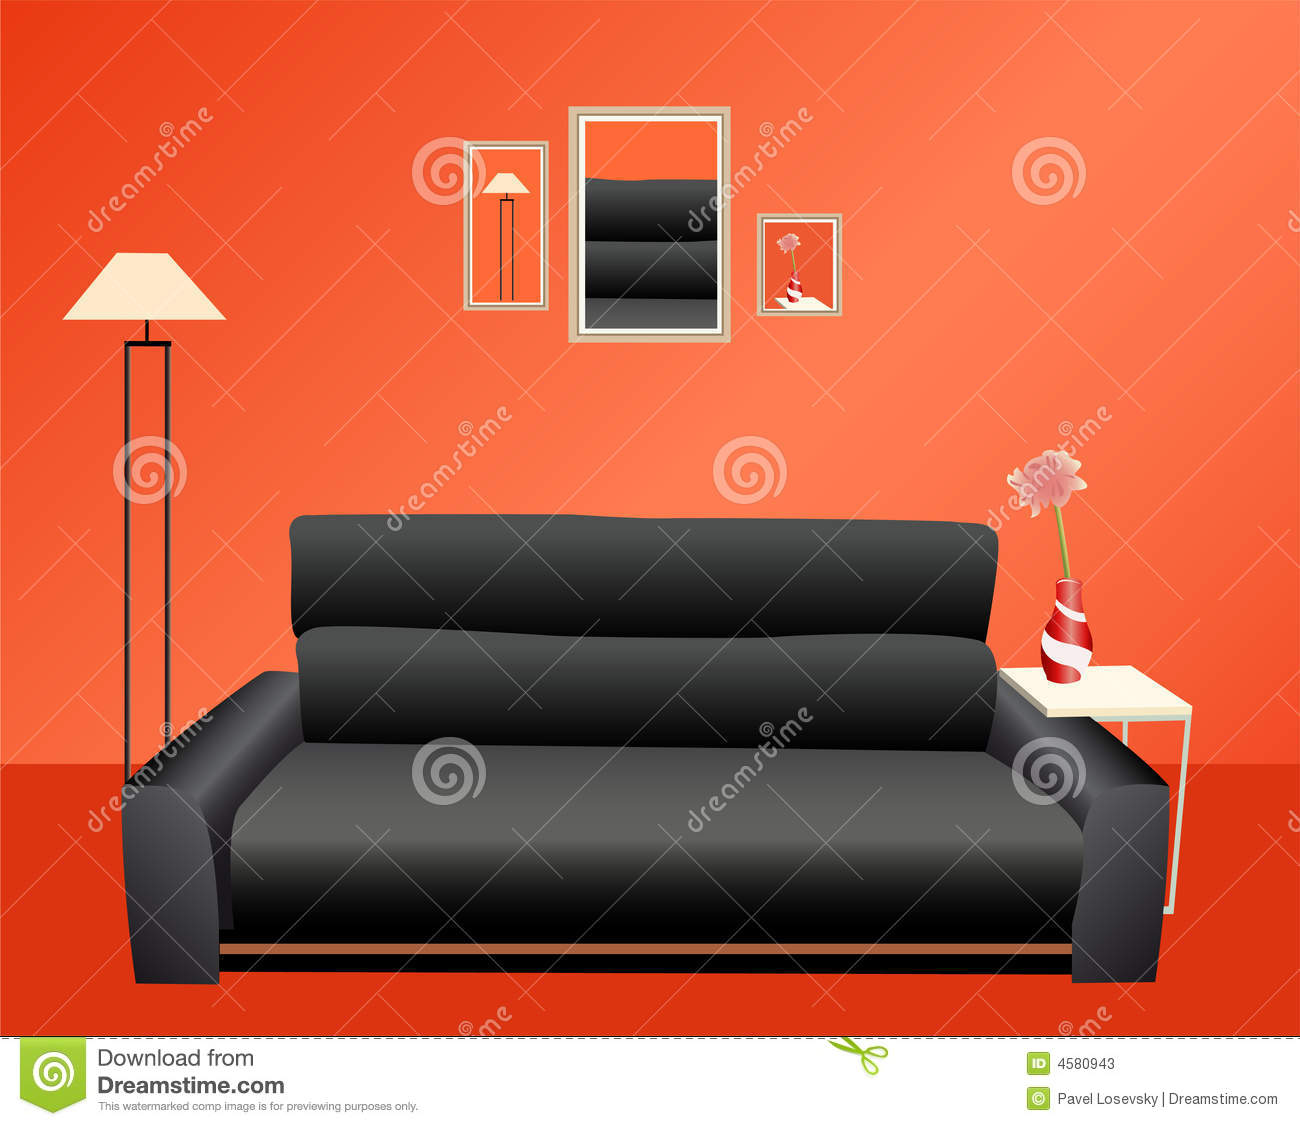 Black Sofa Red Wall Stock s Image